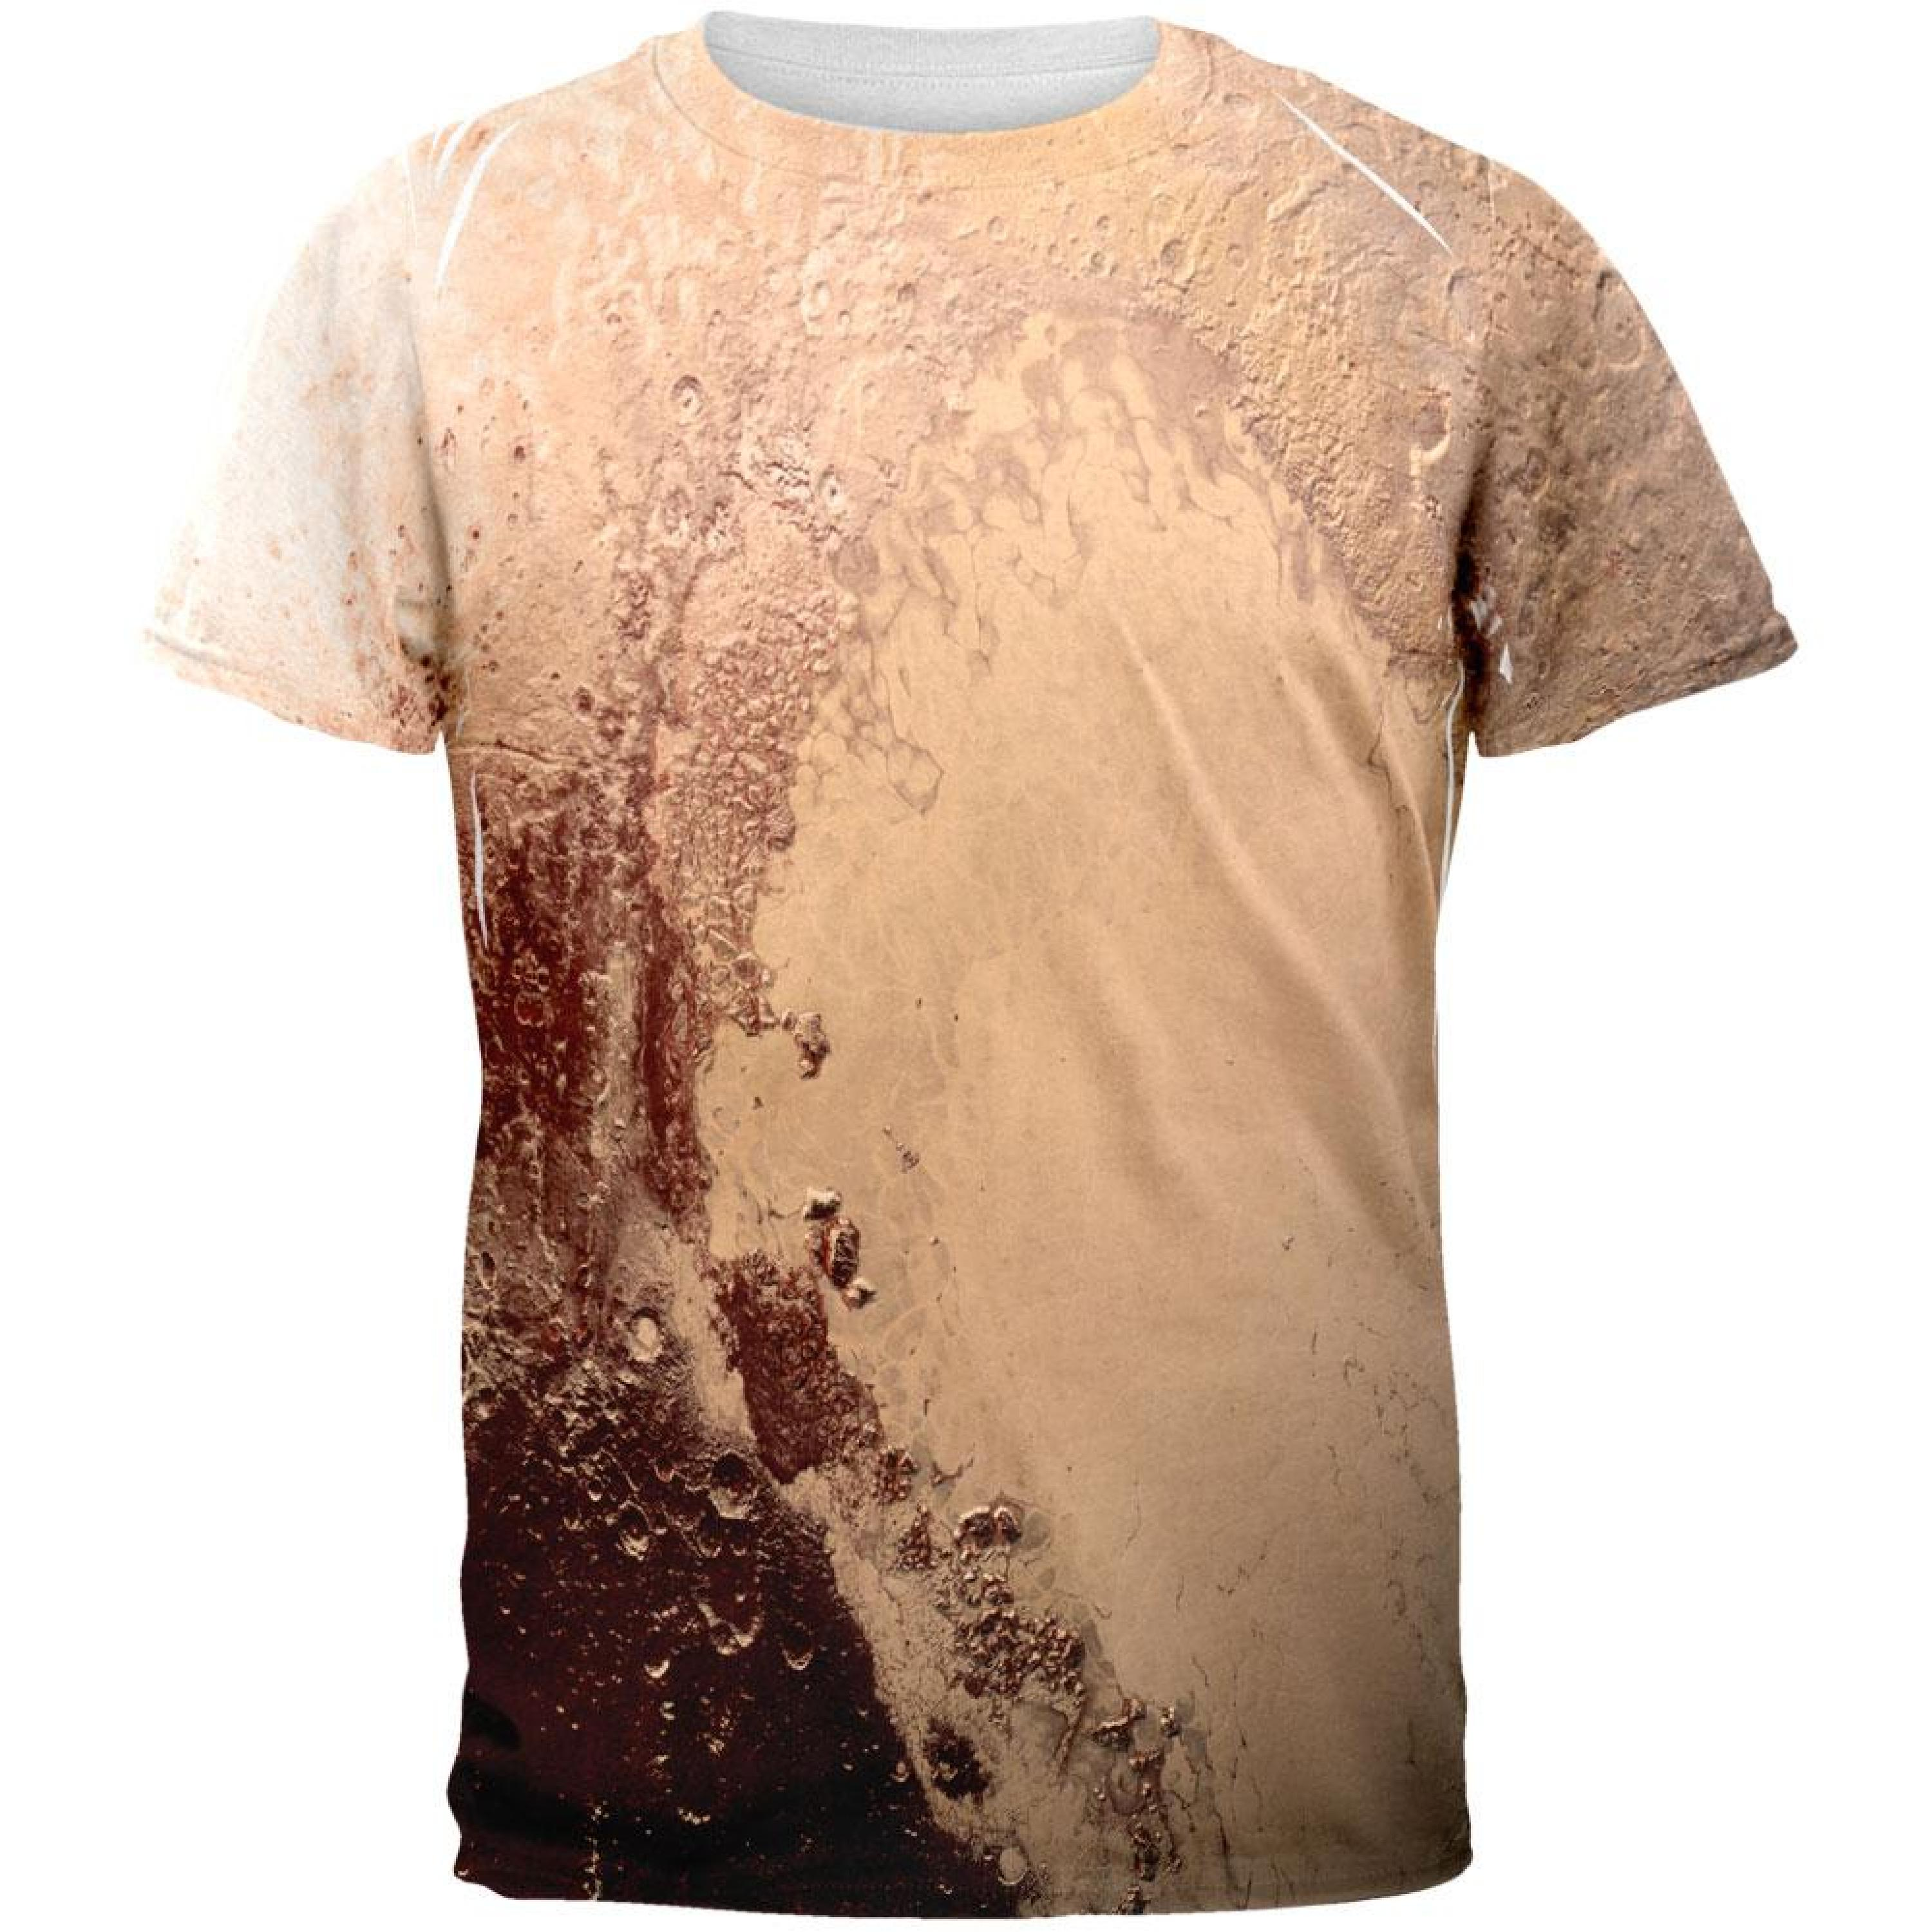 Solar System Planet Pluto All Over Adult T-Shirt